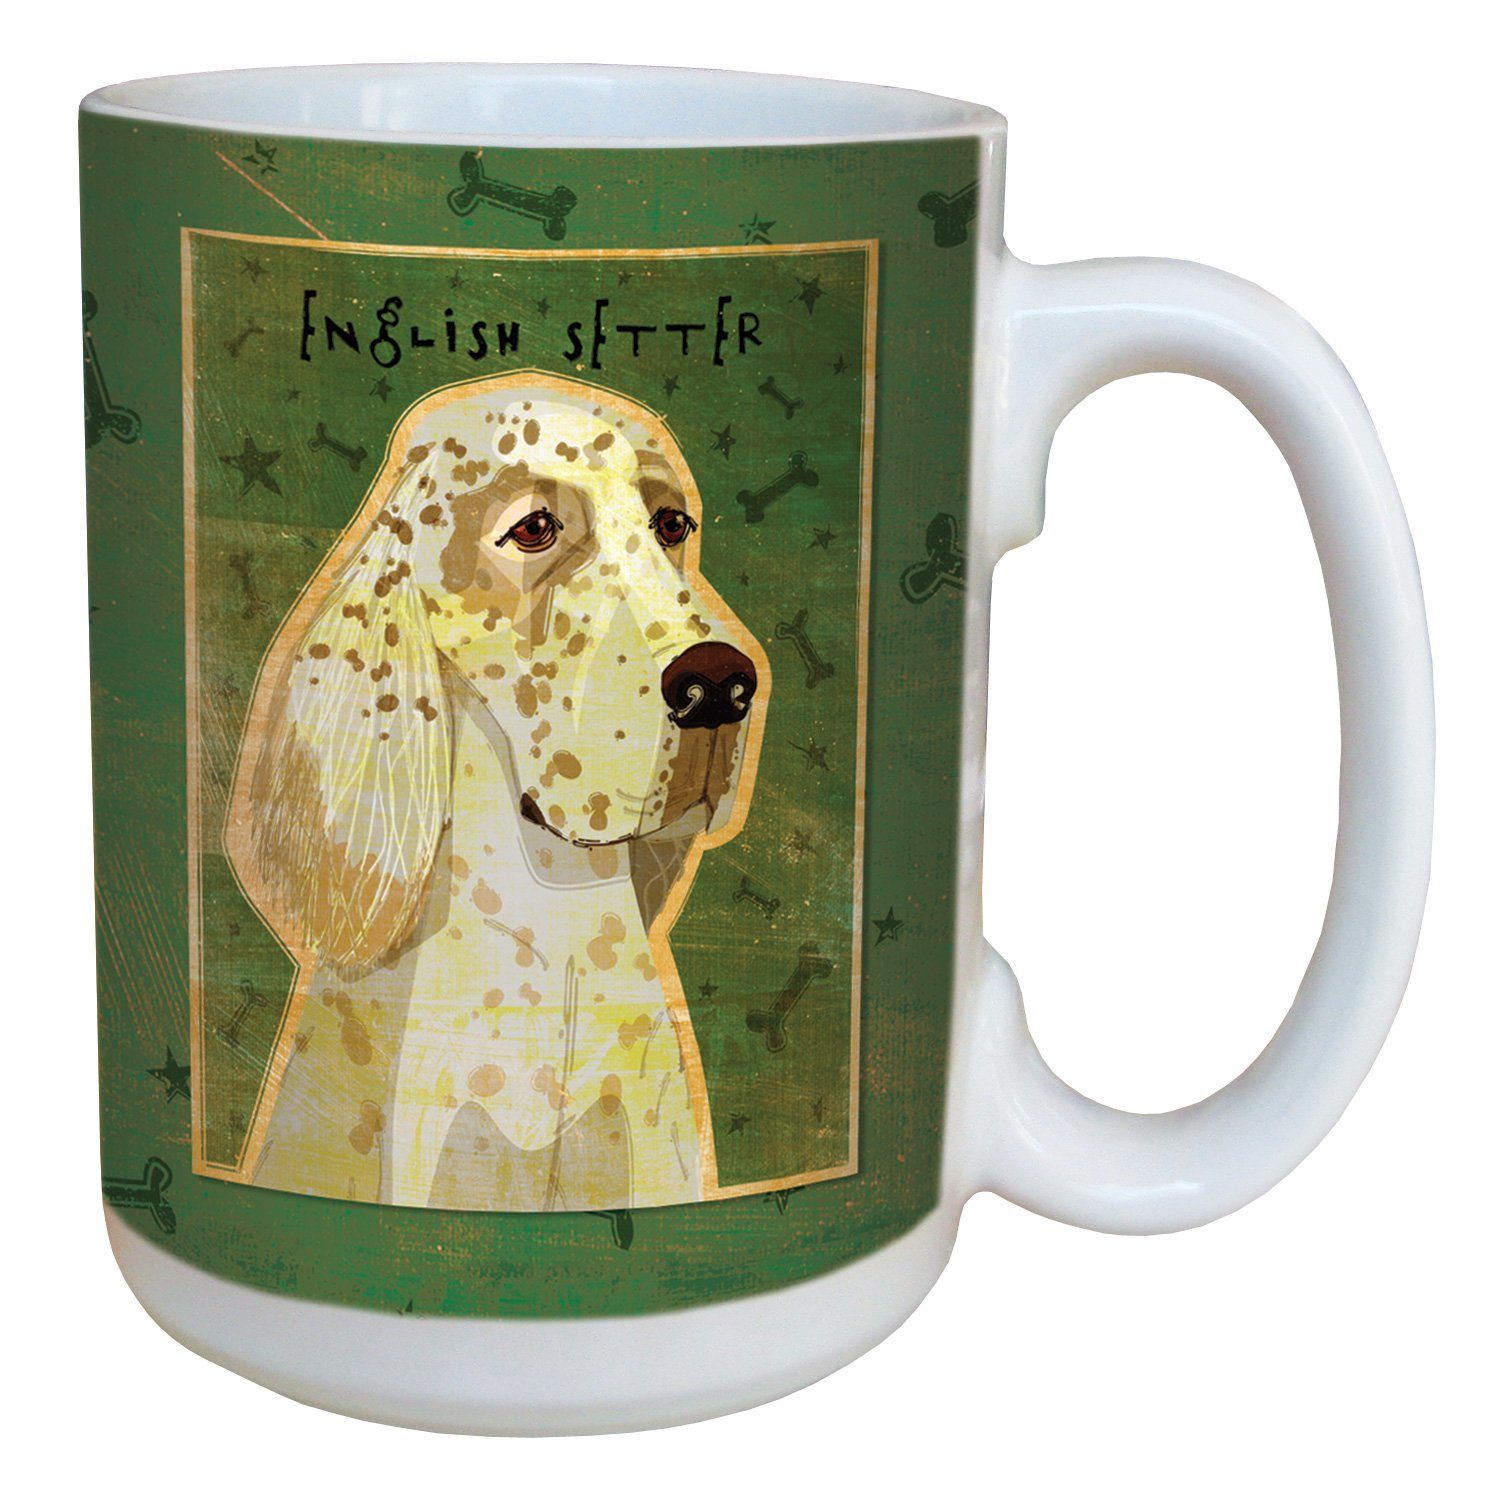 15-Ounce Tree-Free Greetings sg44038 English Setter by John W Golden Ceramic Mug with Full-Sized Handle